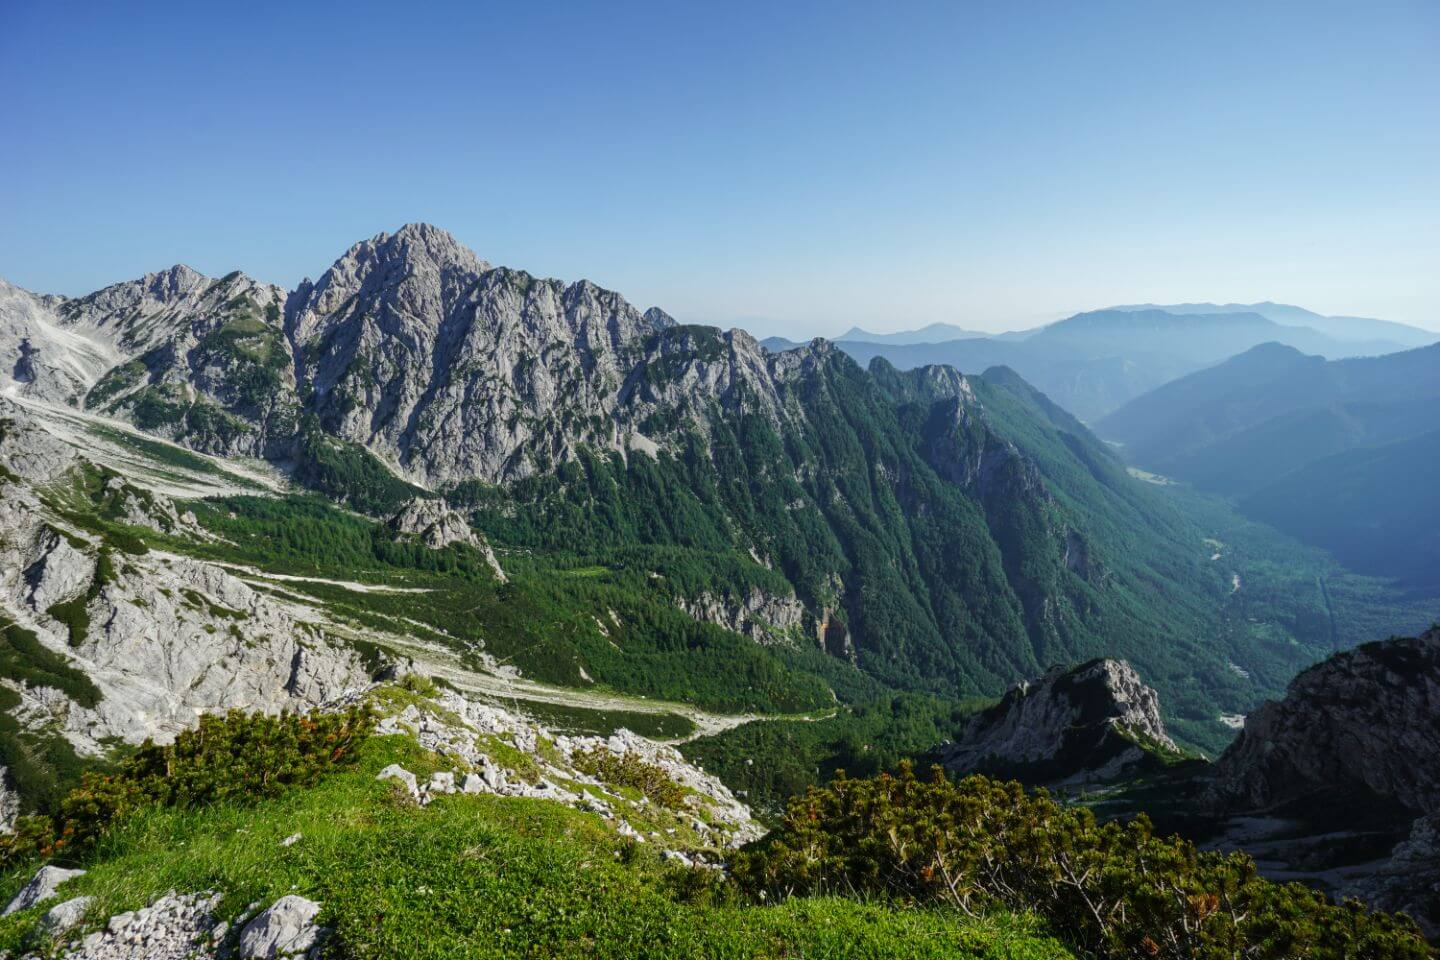 Hiking above Logar Valley, 5 Days in Slovenia